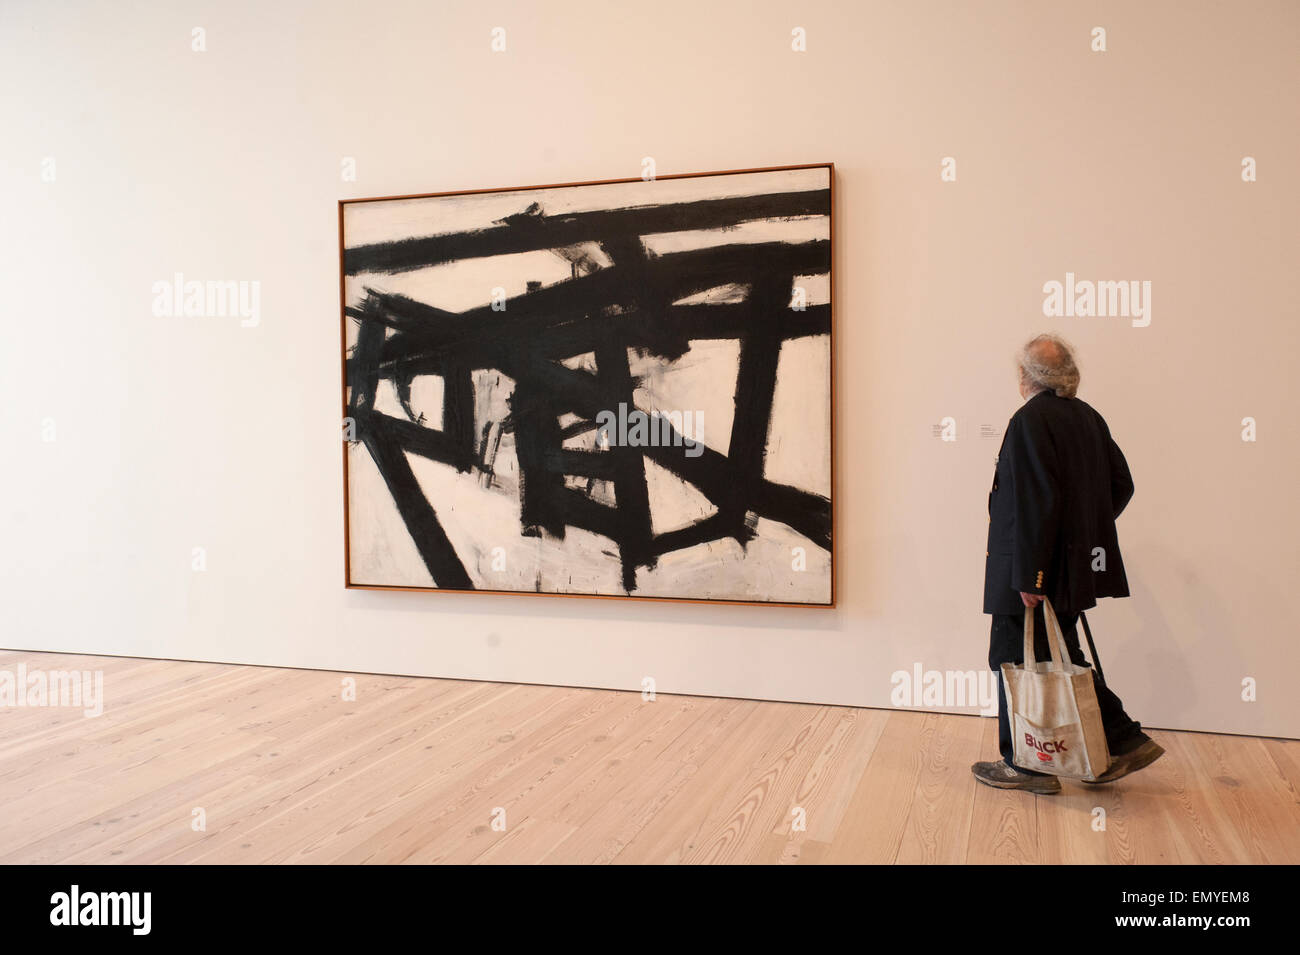 New York, New York, USA. 23rd Apr, 2015. A painting by Franz Kline called 'Mahoning' hangs in the new home - Stock Image